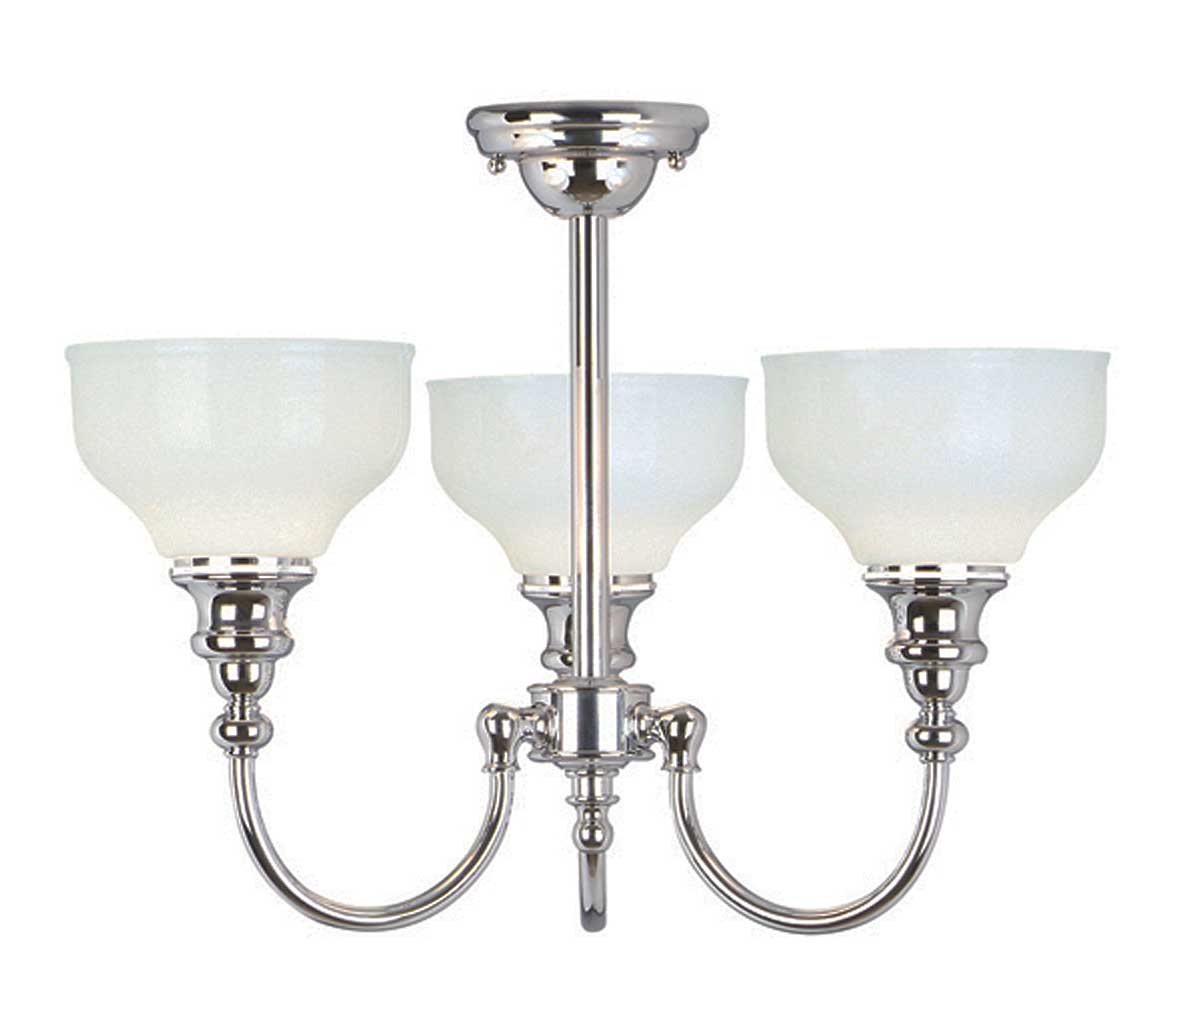 lustre salle de bain chrome et verre cheadle luminaires elstead made in england r f 12110103. Black Bedroom Furniture Sets. Home Design Ideas